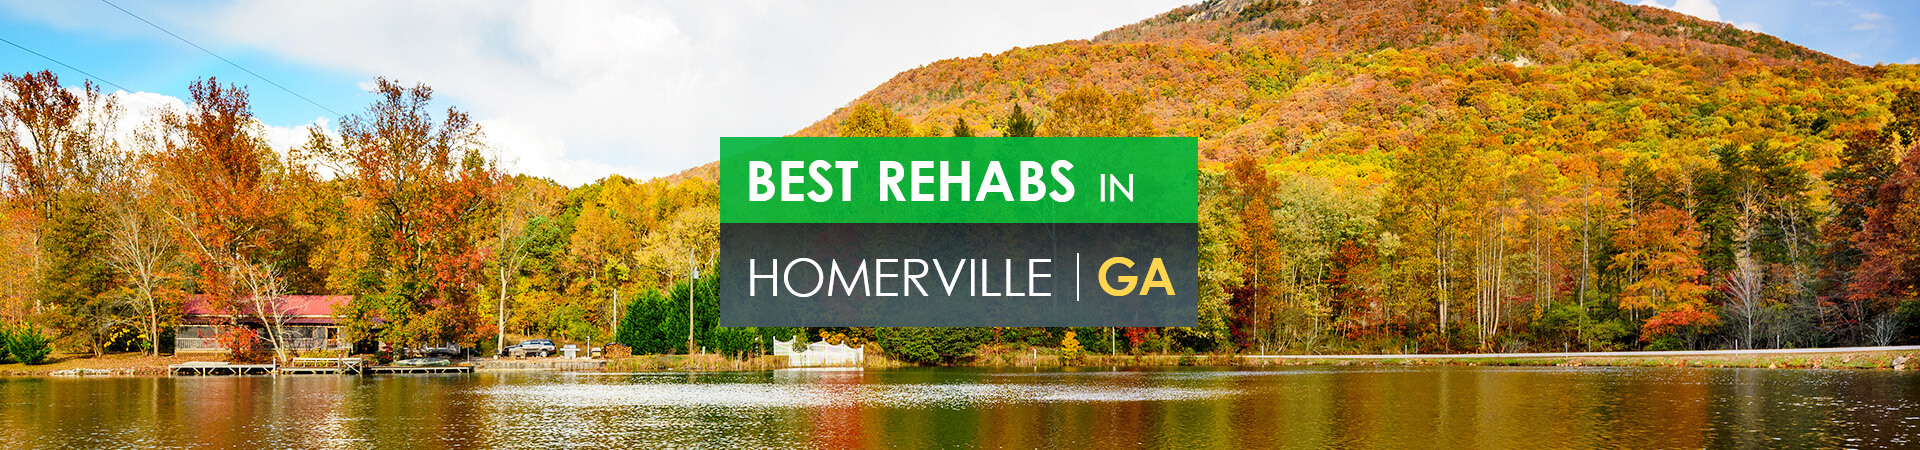 Best rehabs in Homerville, GA